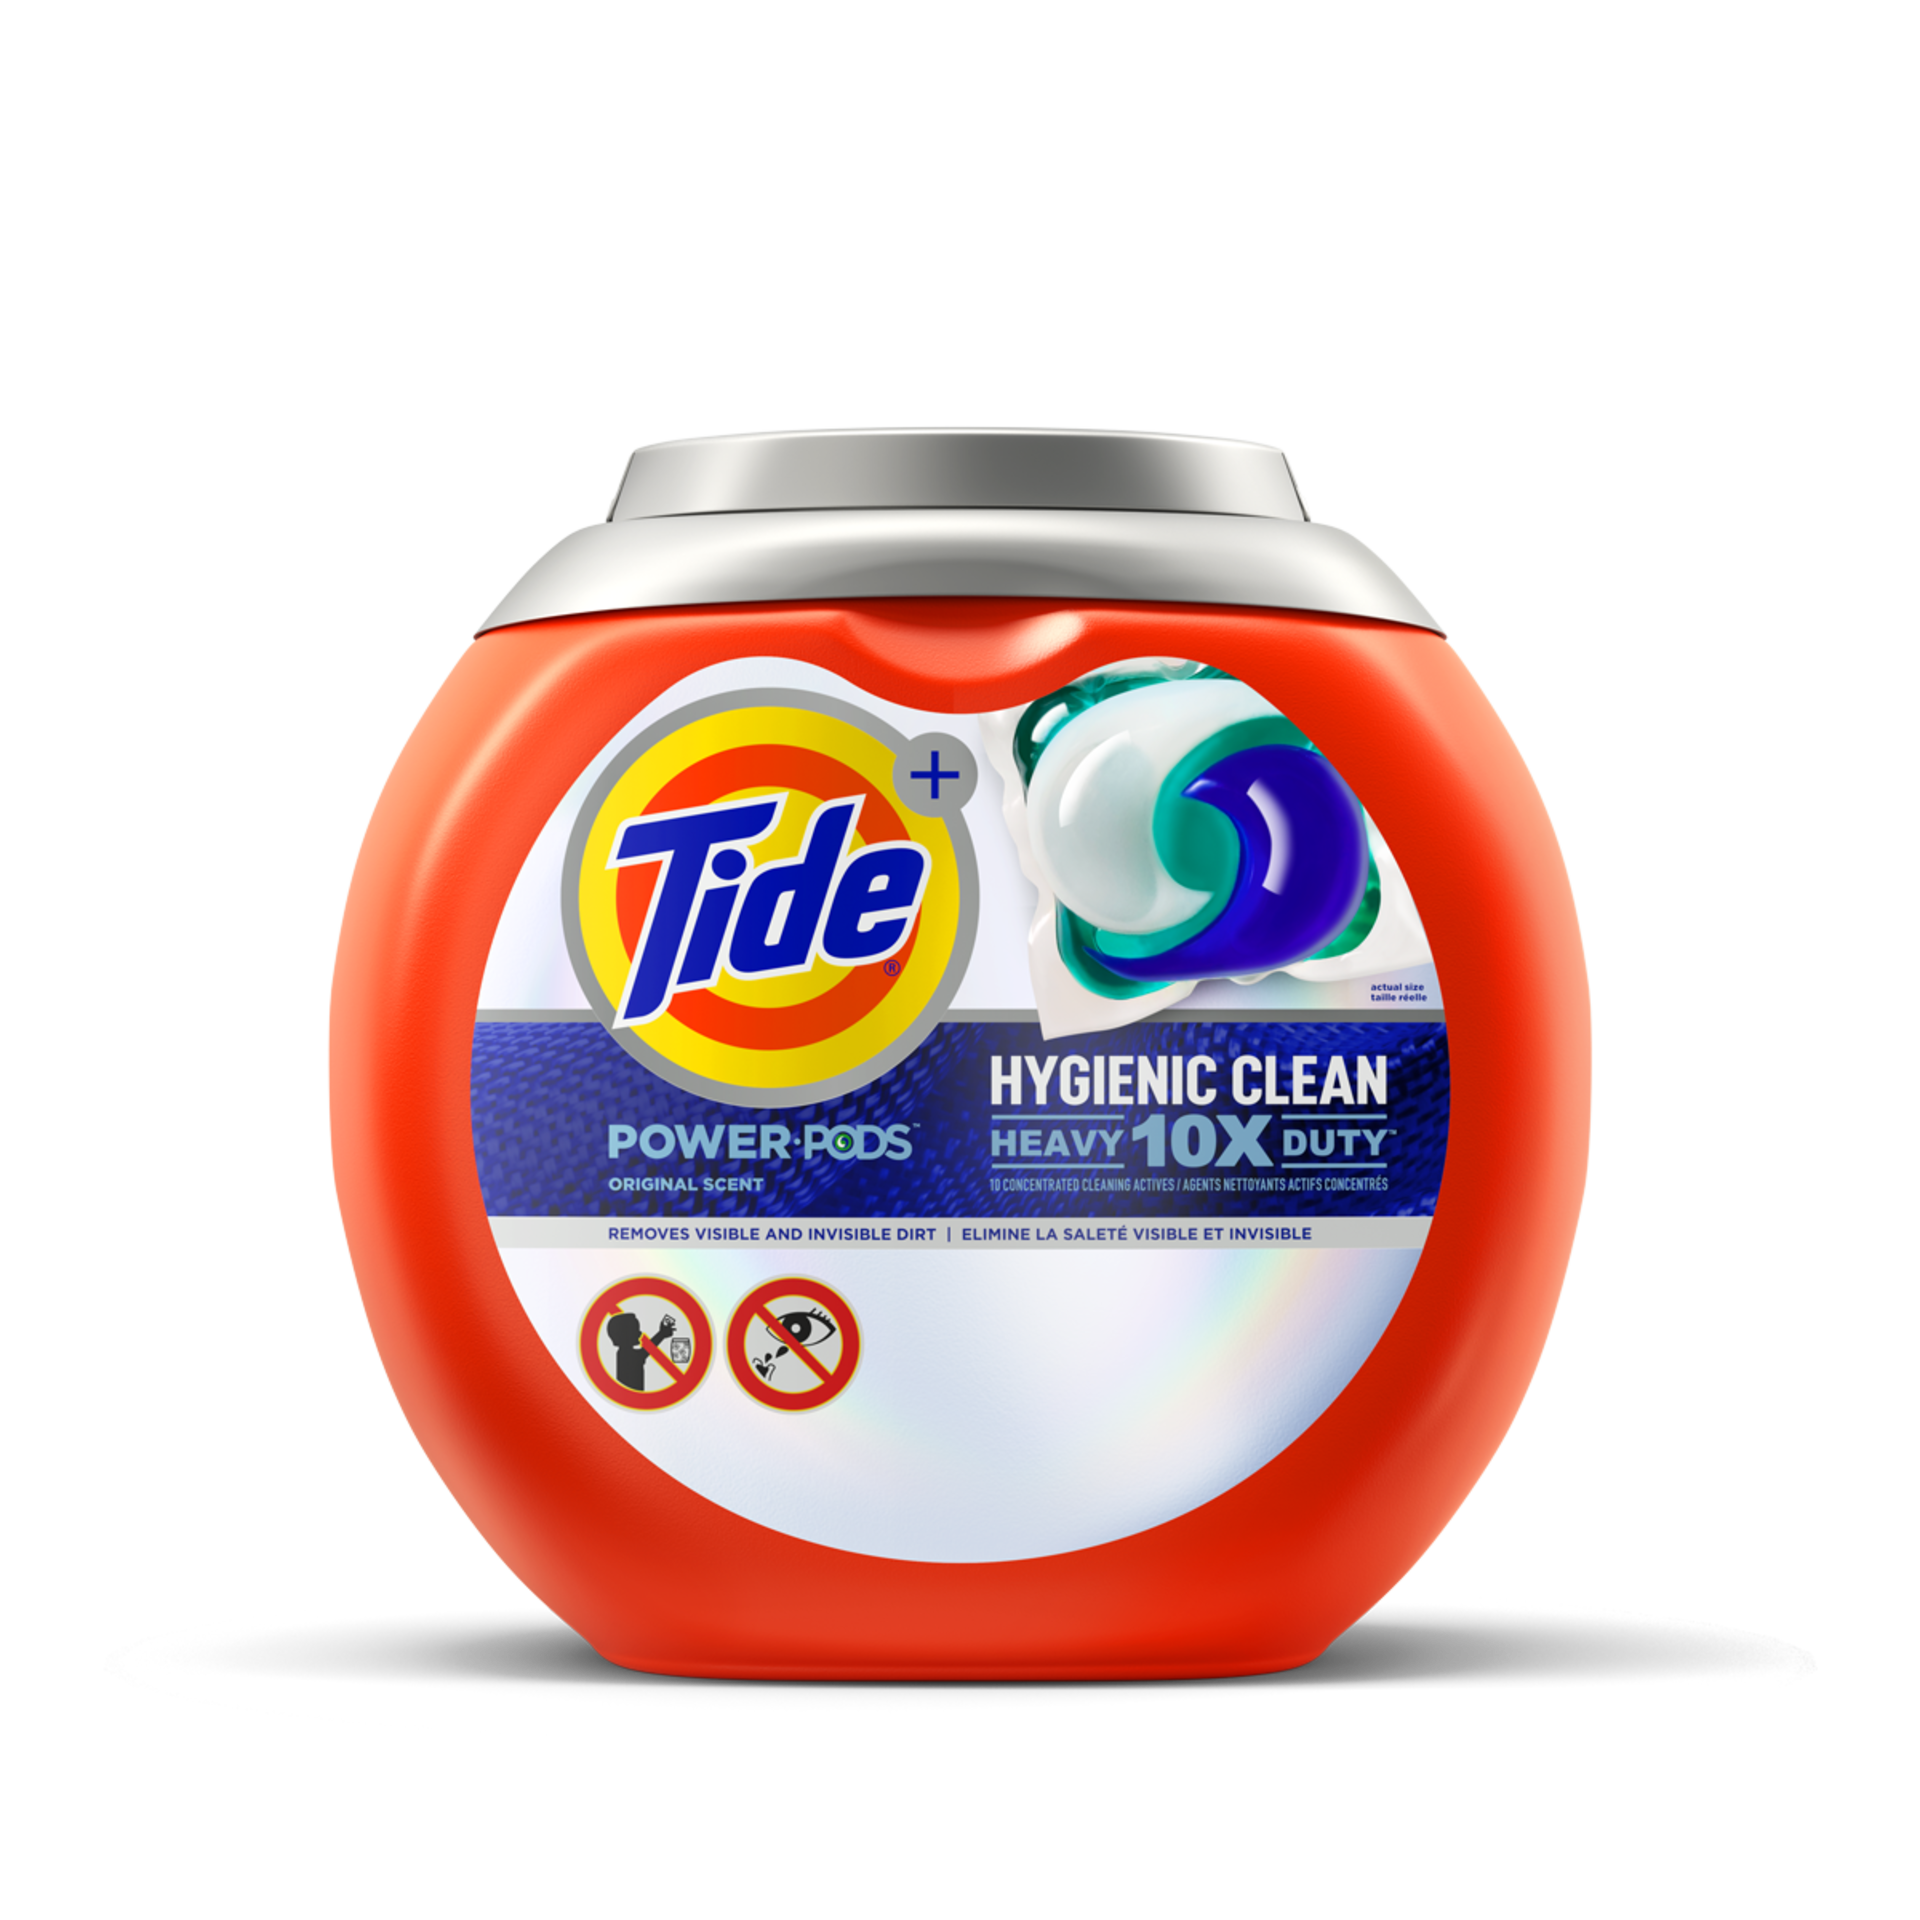 Tide Hygienic Clean Heavy Duty 10x Power PODS Detergent Original Scent